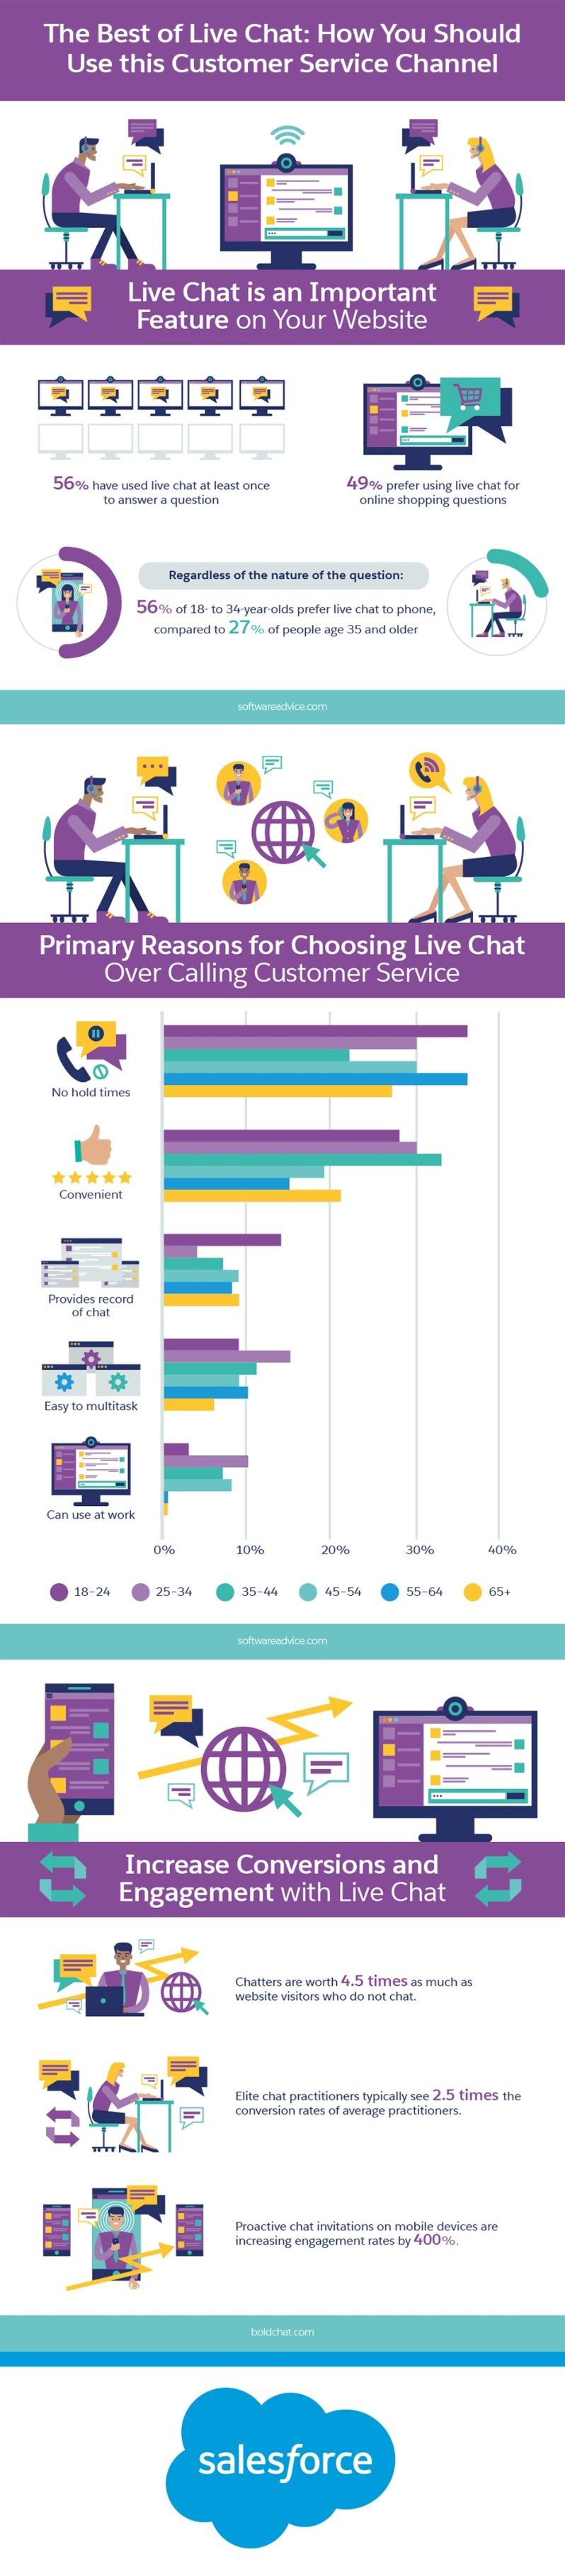 The Best of Live Chat: Improve this Customer Service Channel Infographic